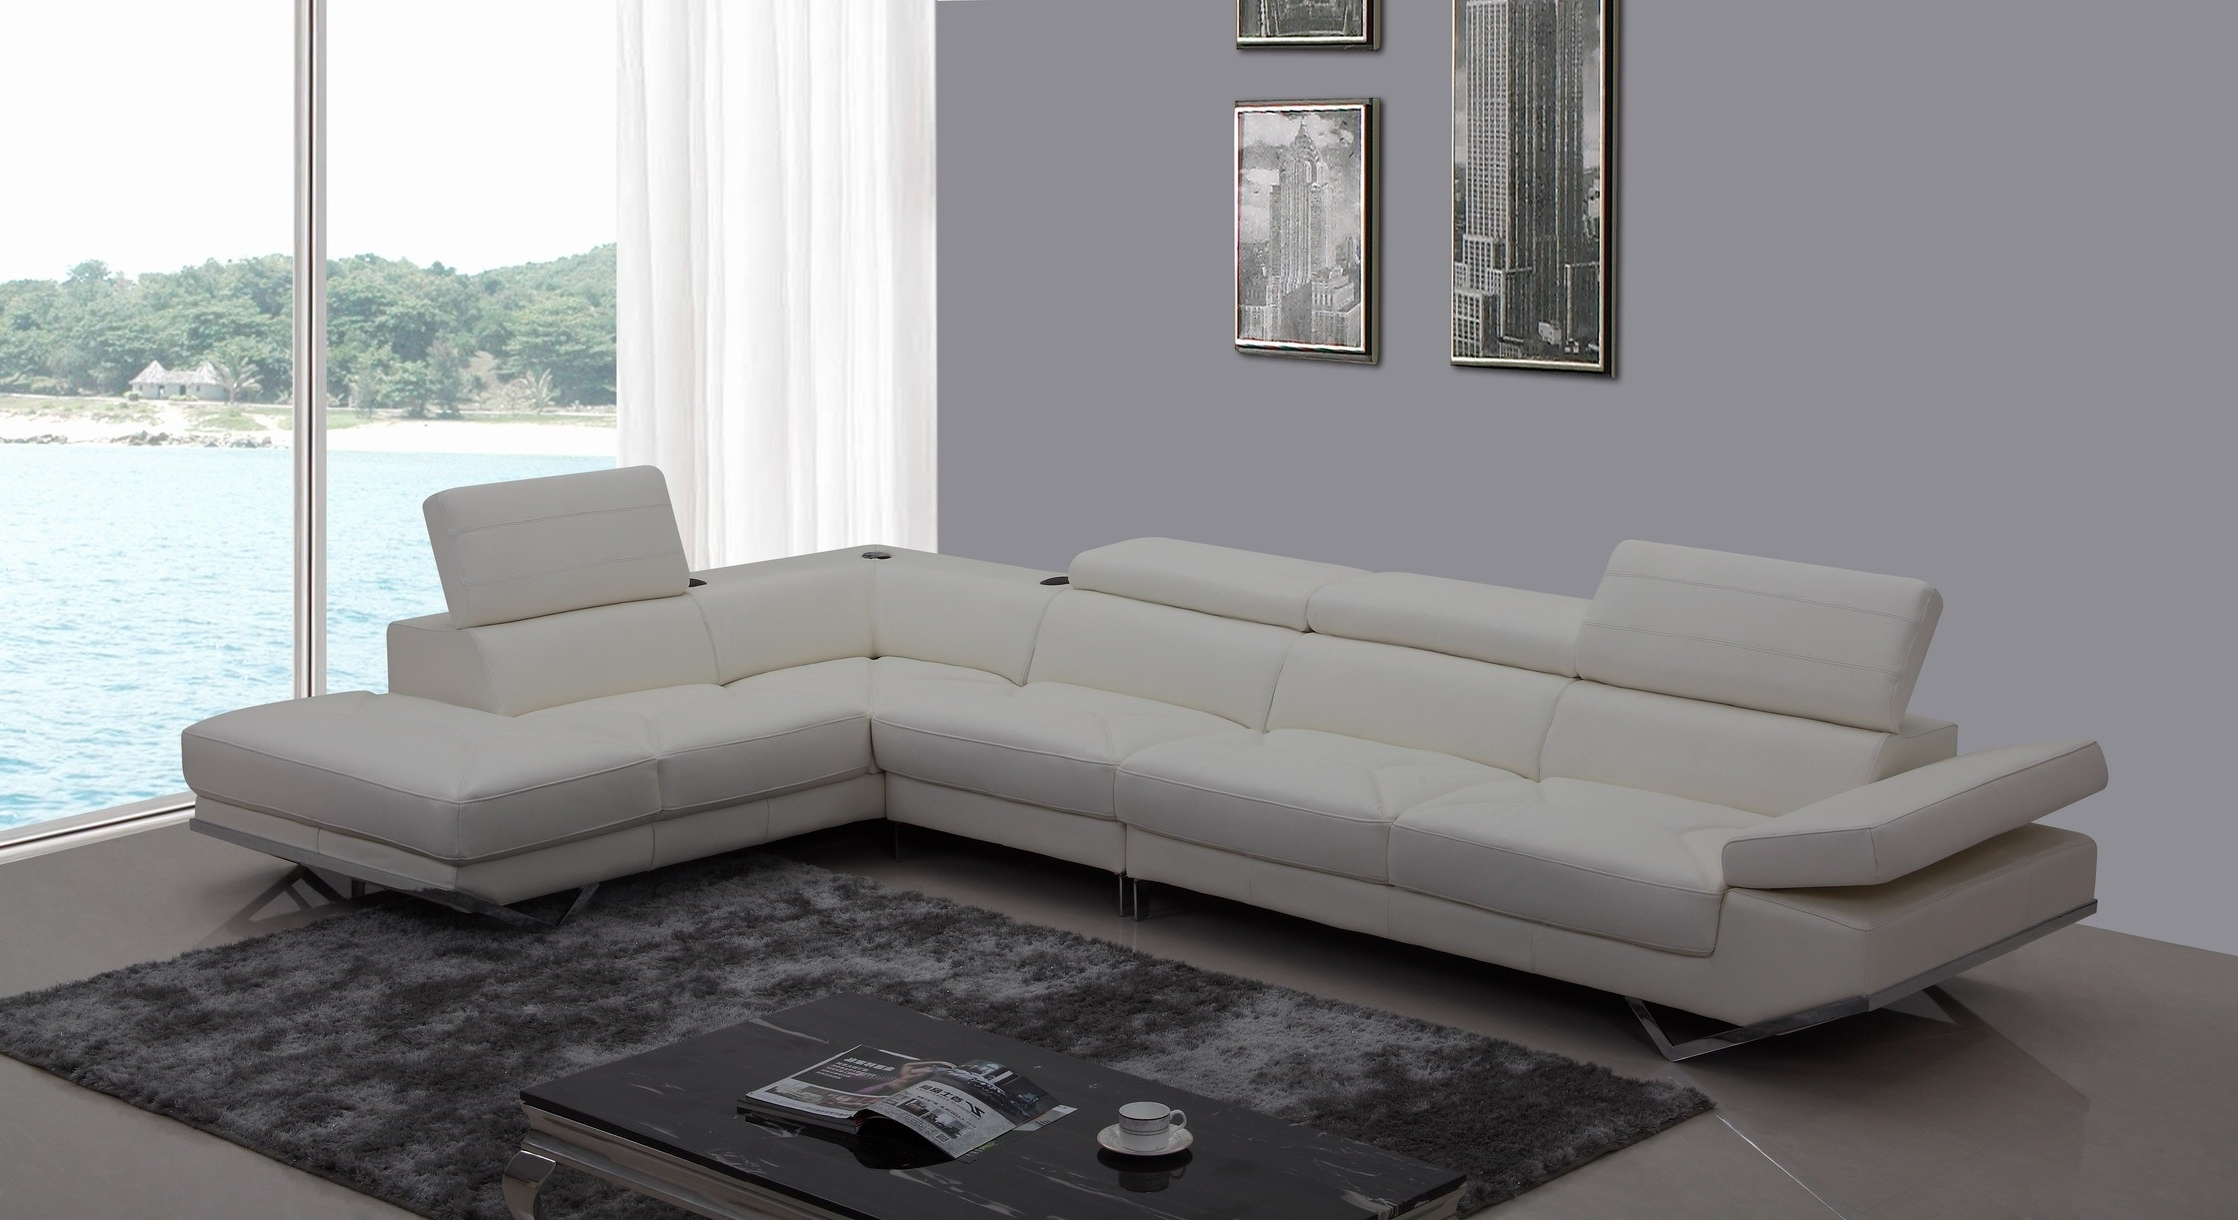 White Leather Couch Gumtree Sydney Sofas Ebay Corner Sofa For Sale Throughout Well Known Sectional Sofas At Ebay (View 20 of 20)